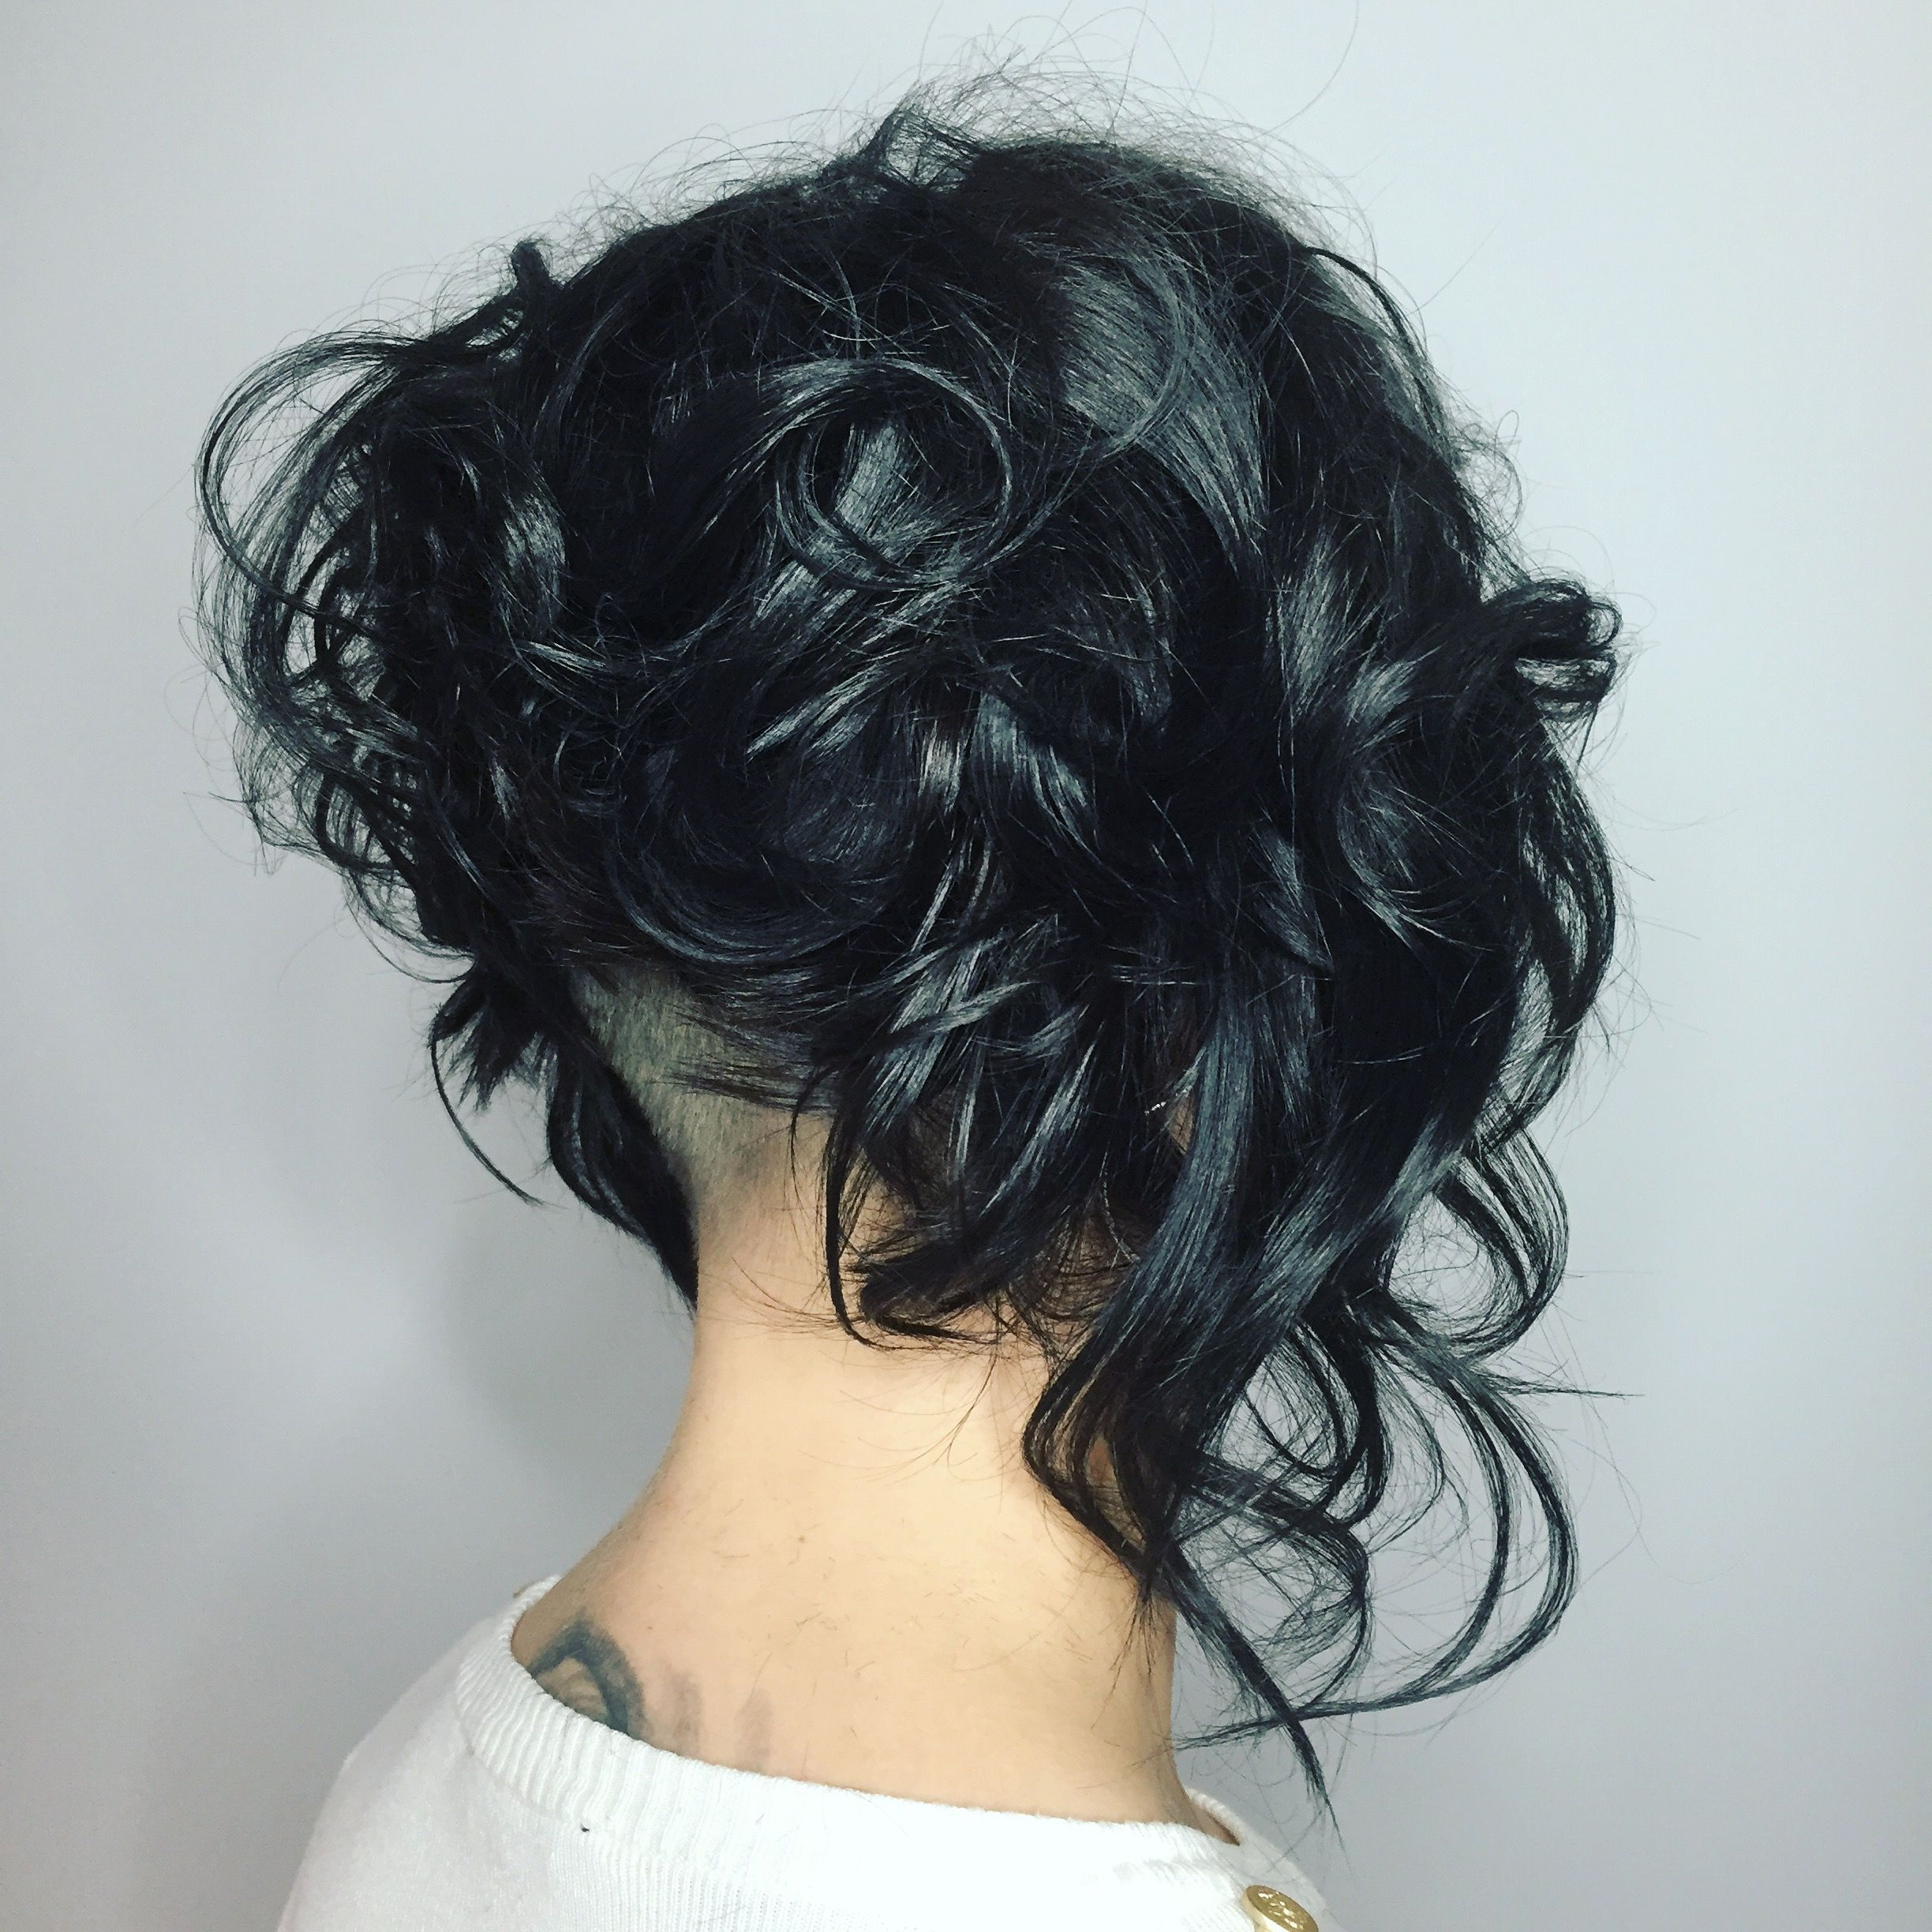 Curly Bob With Undercut Stacked Bob Hairstyles Curly Bob Hairstyles Bob Hairstyles